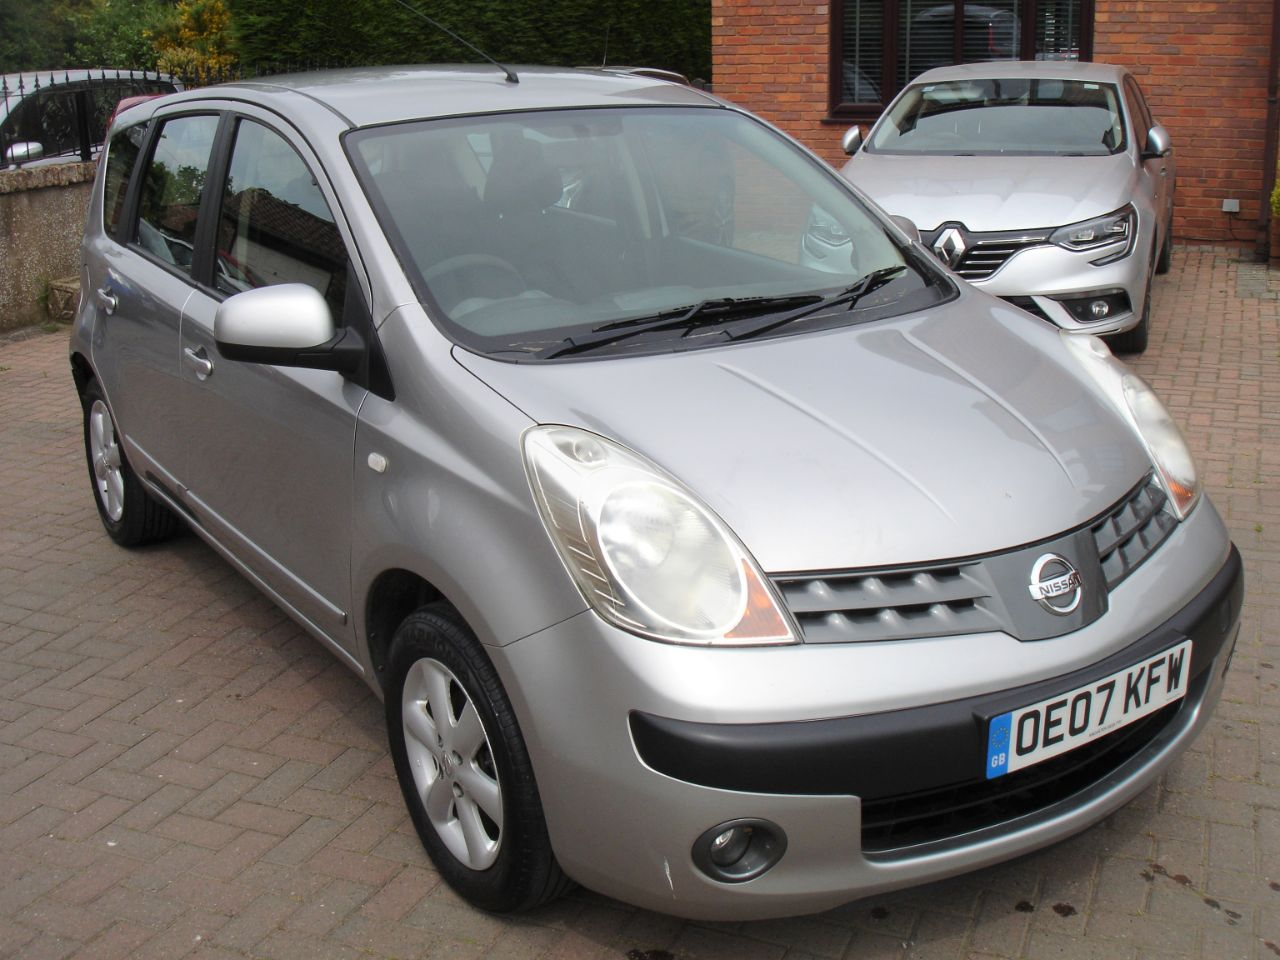 Nissan Note 1.4 SE 5dr MPV Petrol Silver at Level Pitch Selby